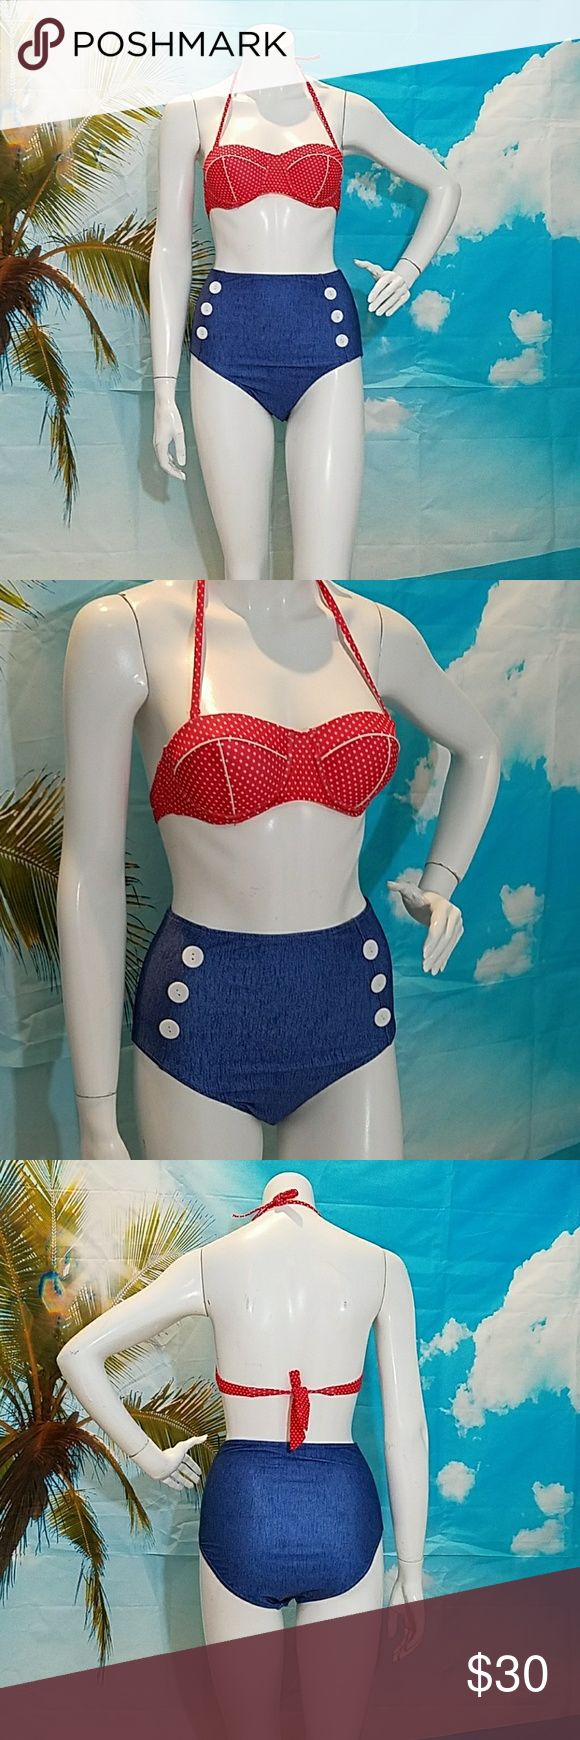 SALE! Retro high waisted polka dot denim bikini Super cute Retro inspired bikini! Size small Top has molded cups with underwire for extra supporr Red and white polka dots  Ties and neck and back  Bottom is high waisted Size small Denim look (not real denim, just denim print) Decorative buttons on front Pull on style Swim Bikinis